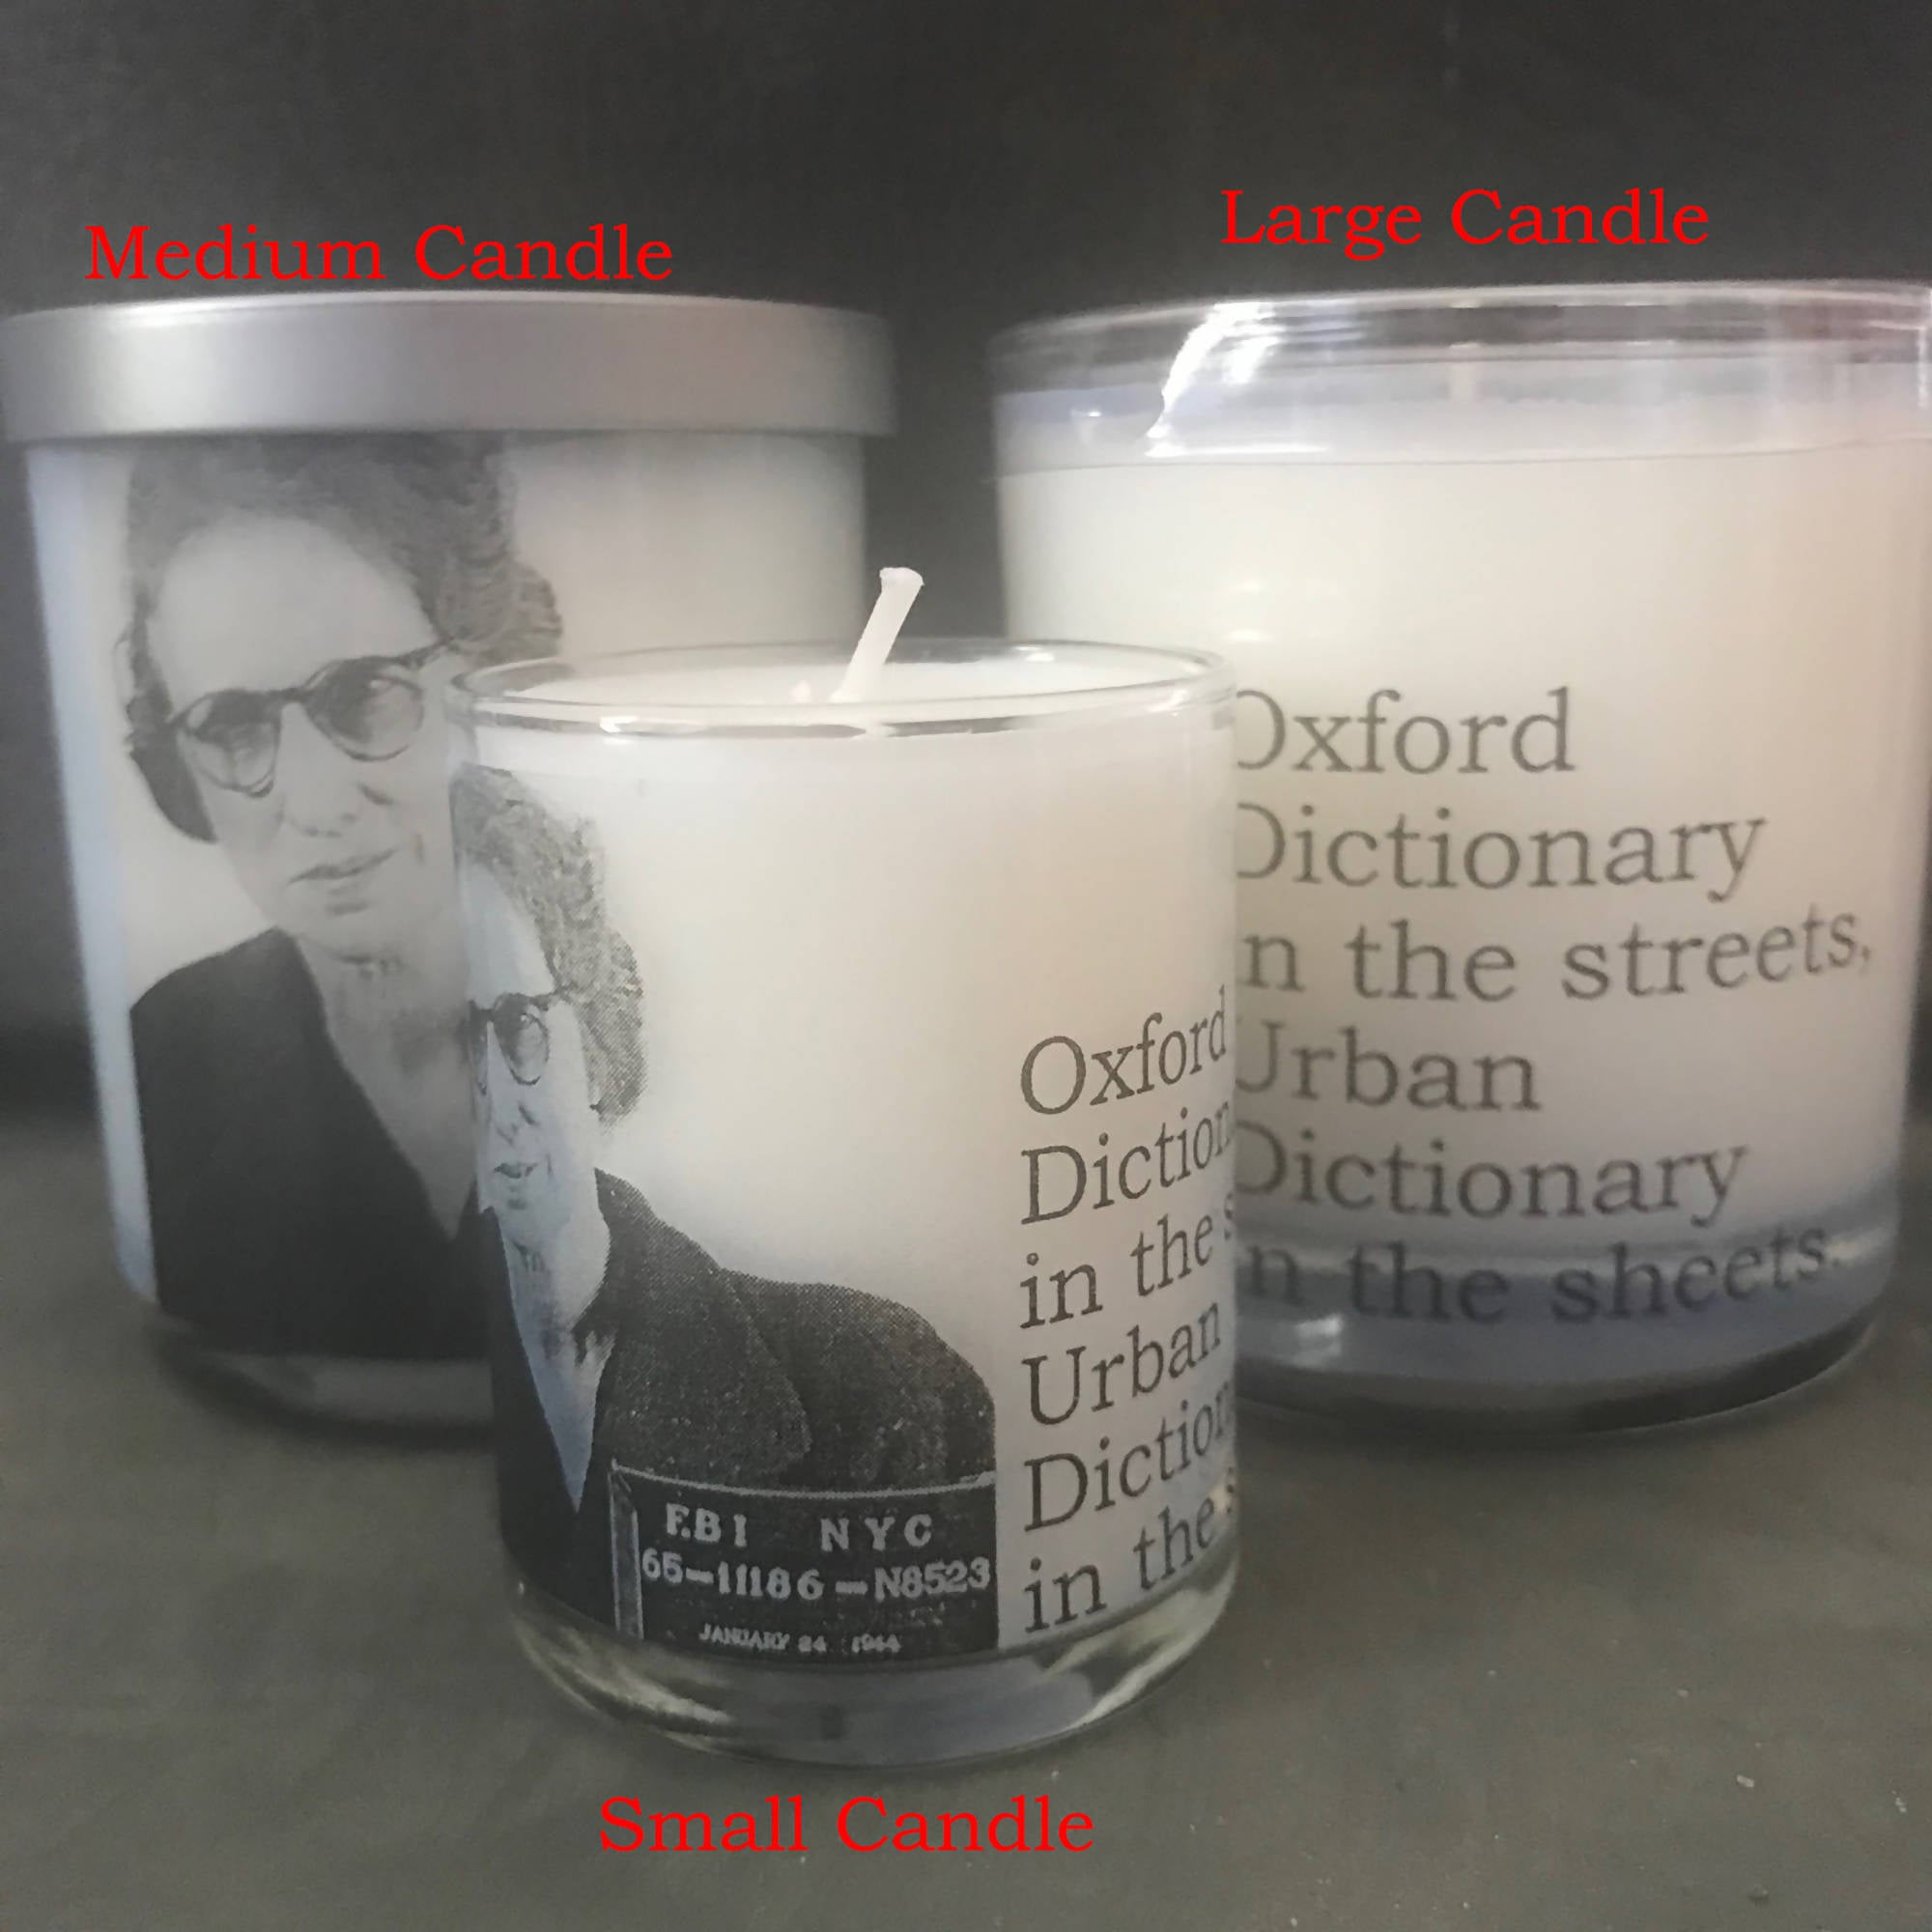 Big House Candles, Oxford dictionary in the streets…